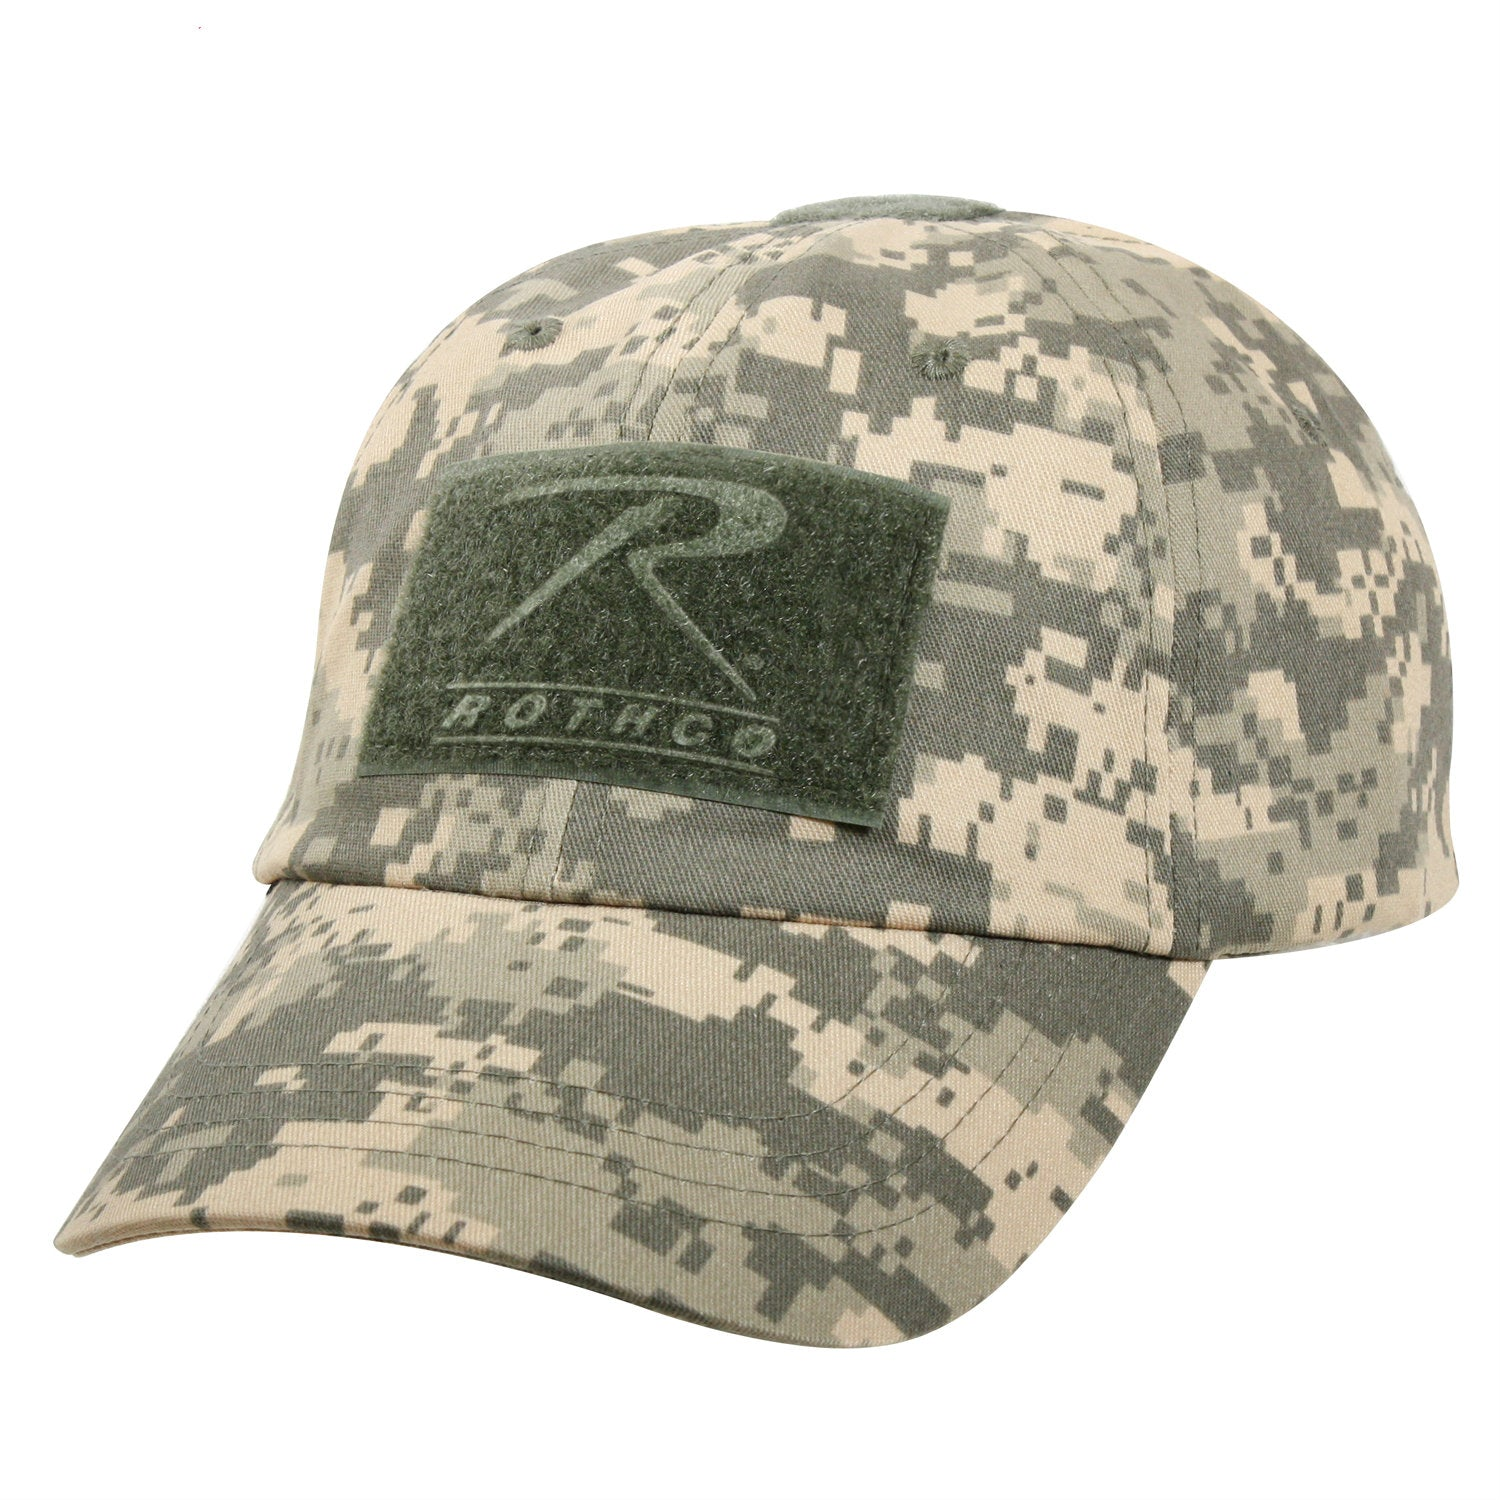 ACU Digital Operator Hat